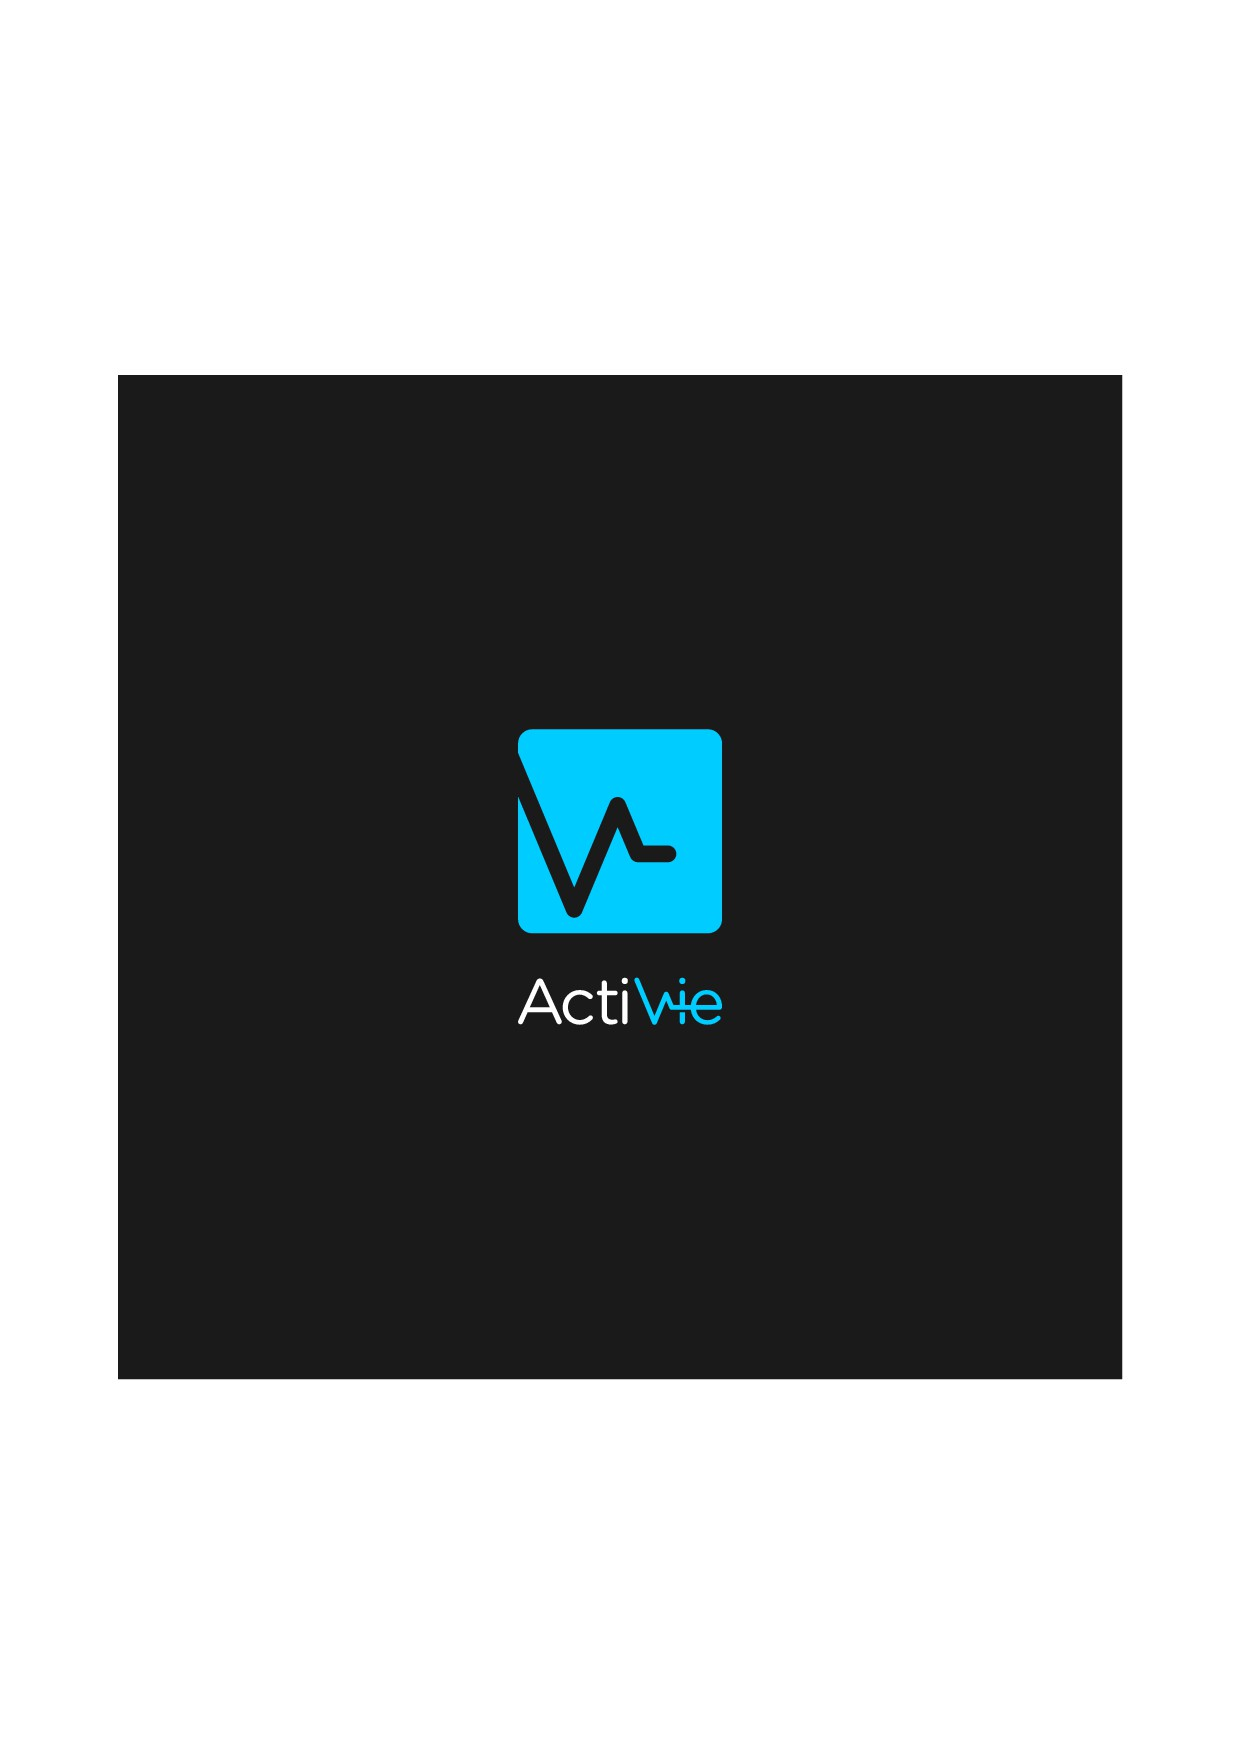 ActiVie - Active life, Healthy Life, Better Life